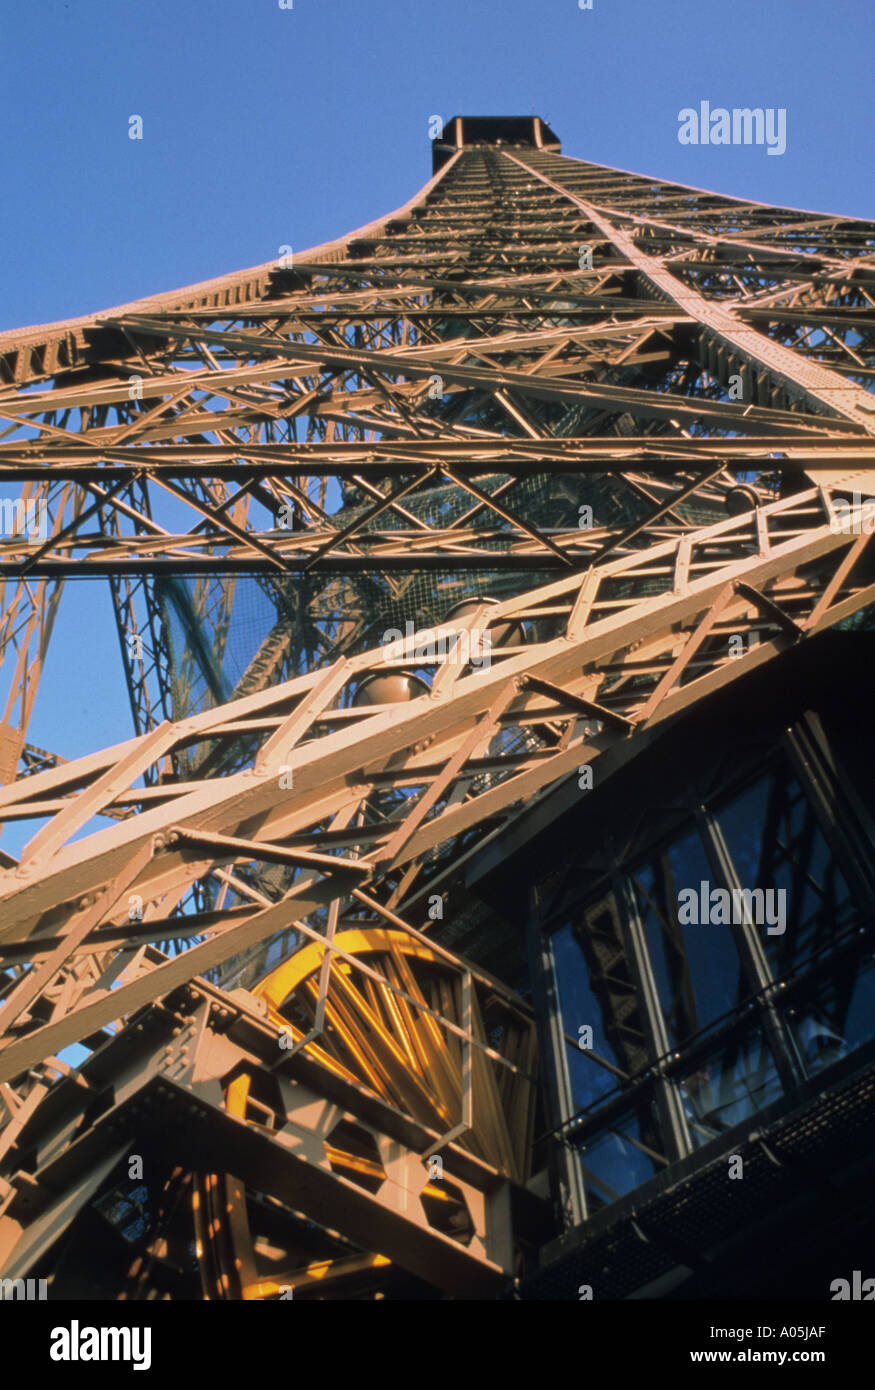 Close up view from below of the Eiffel Tower in Paris France - Stock Image